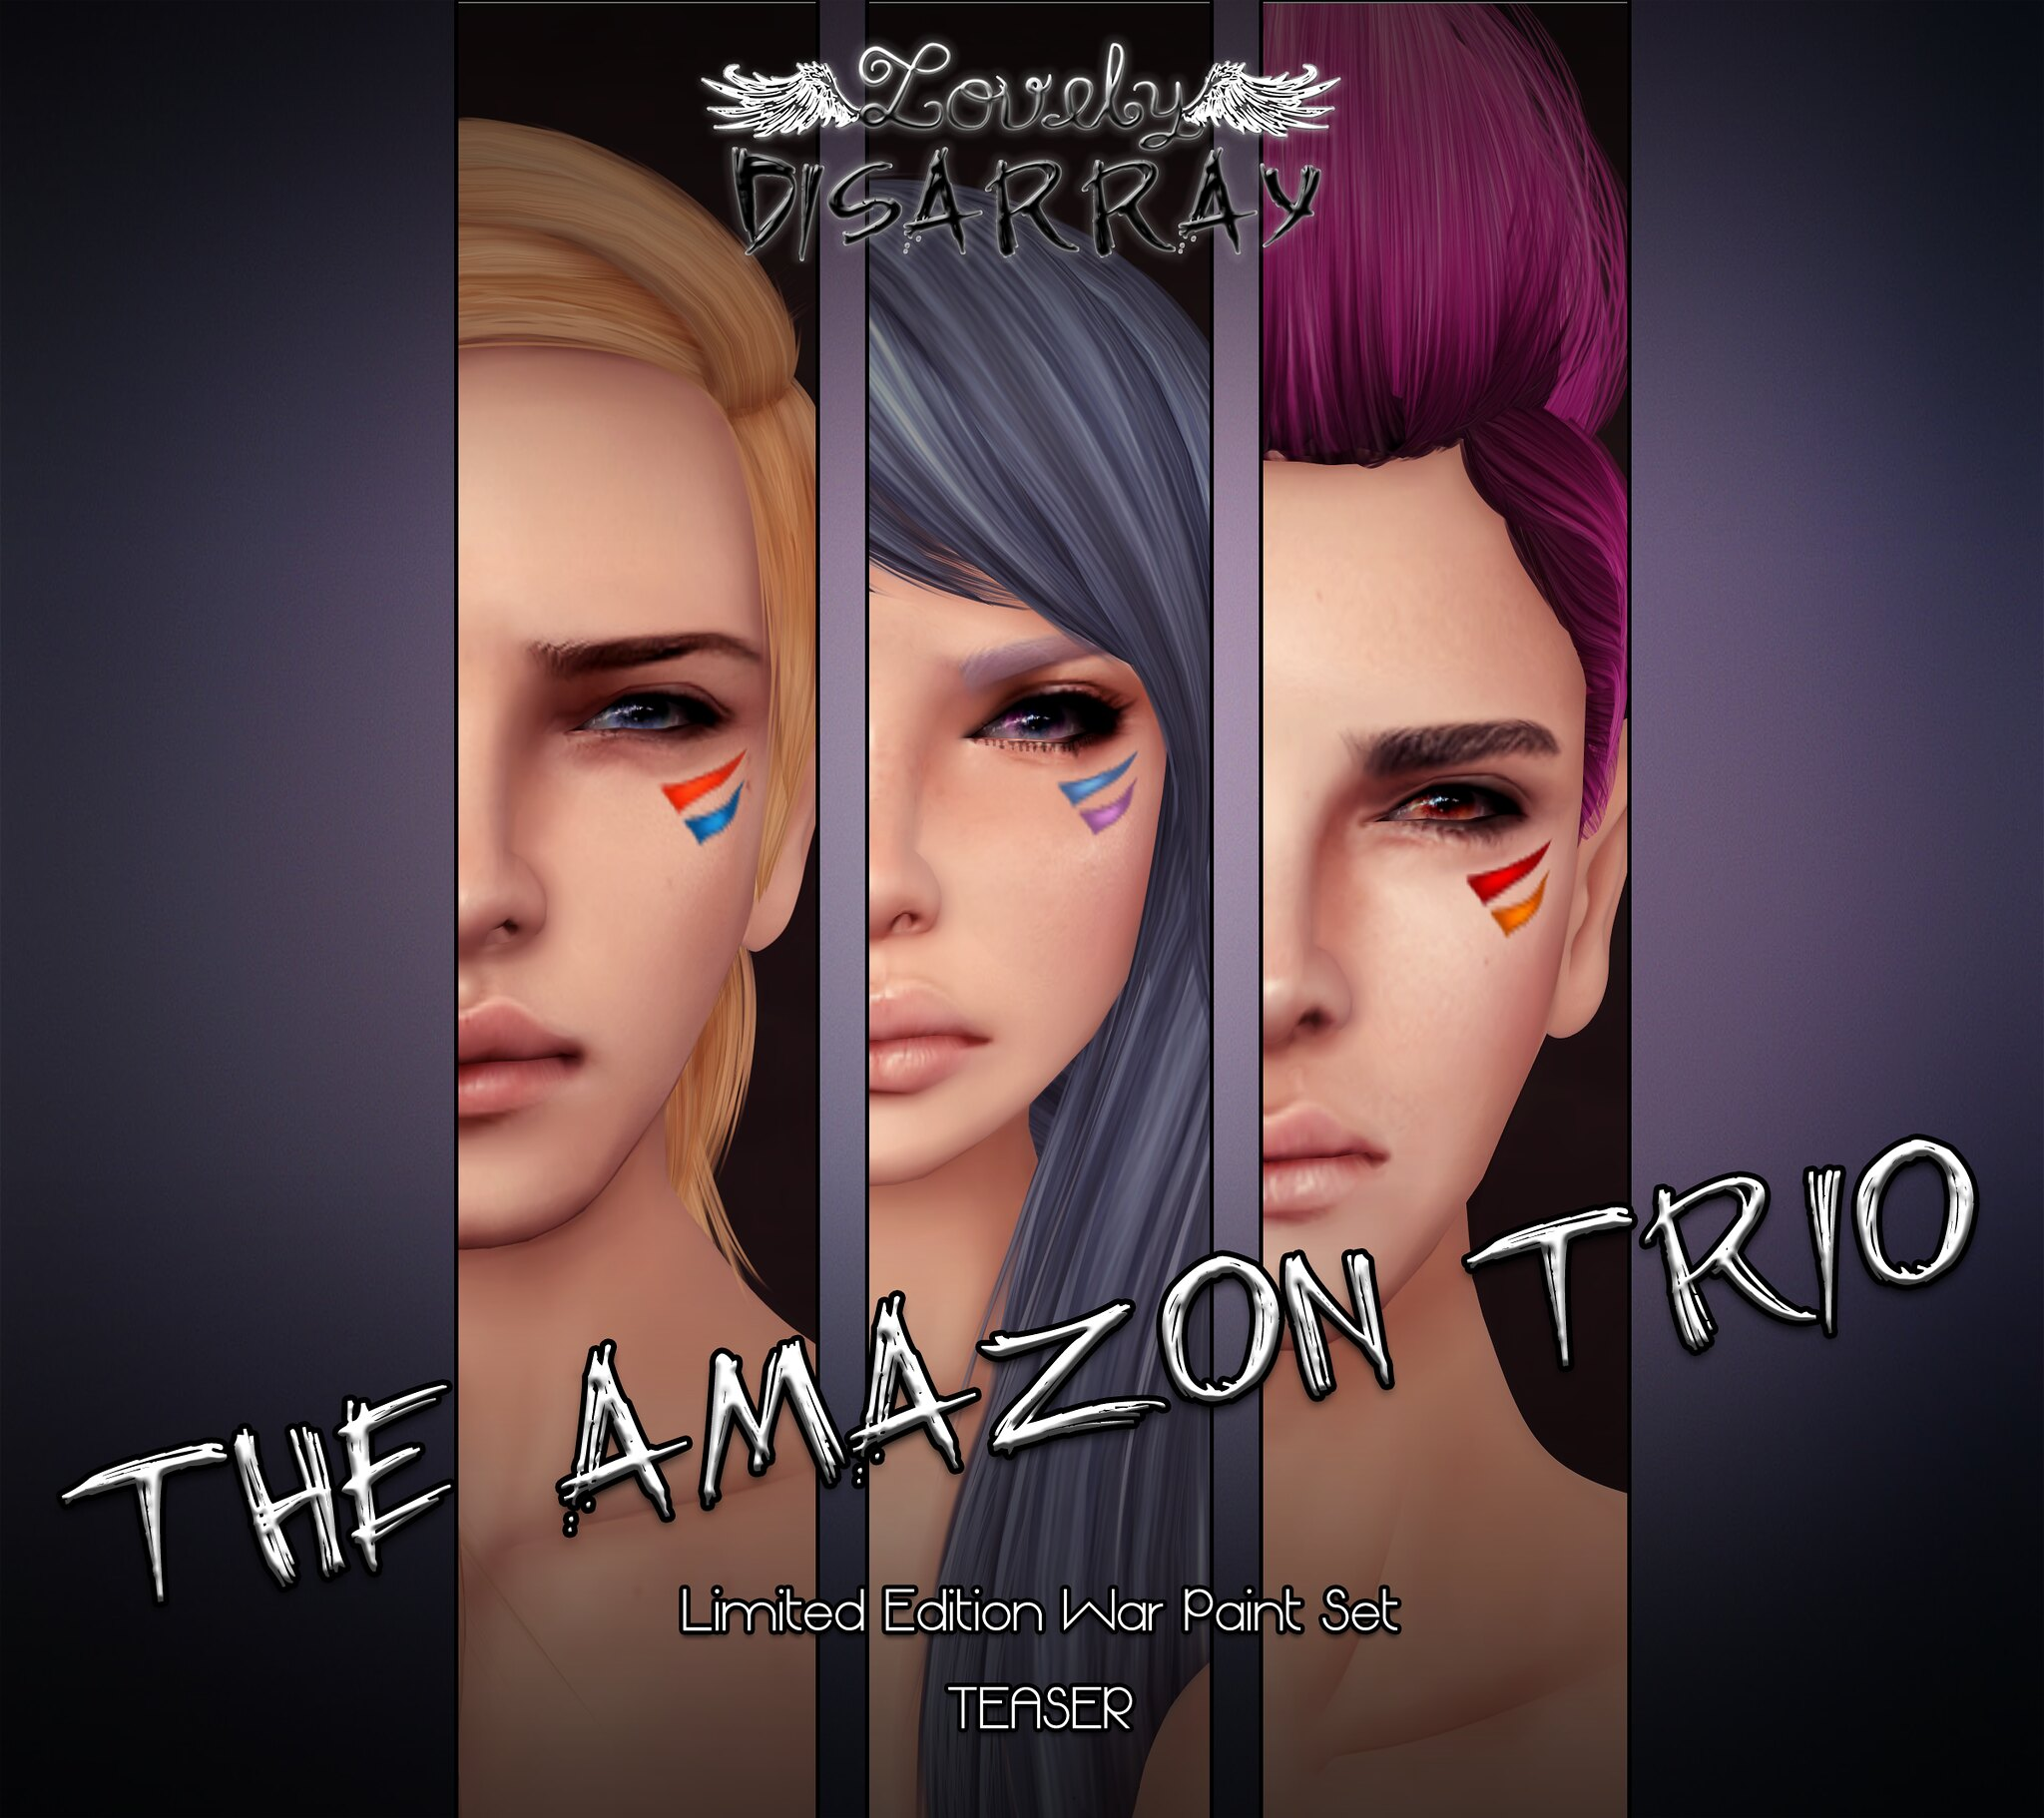 Lovely Disarray - The Amazon Trio TEASER